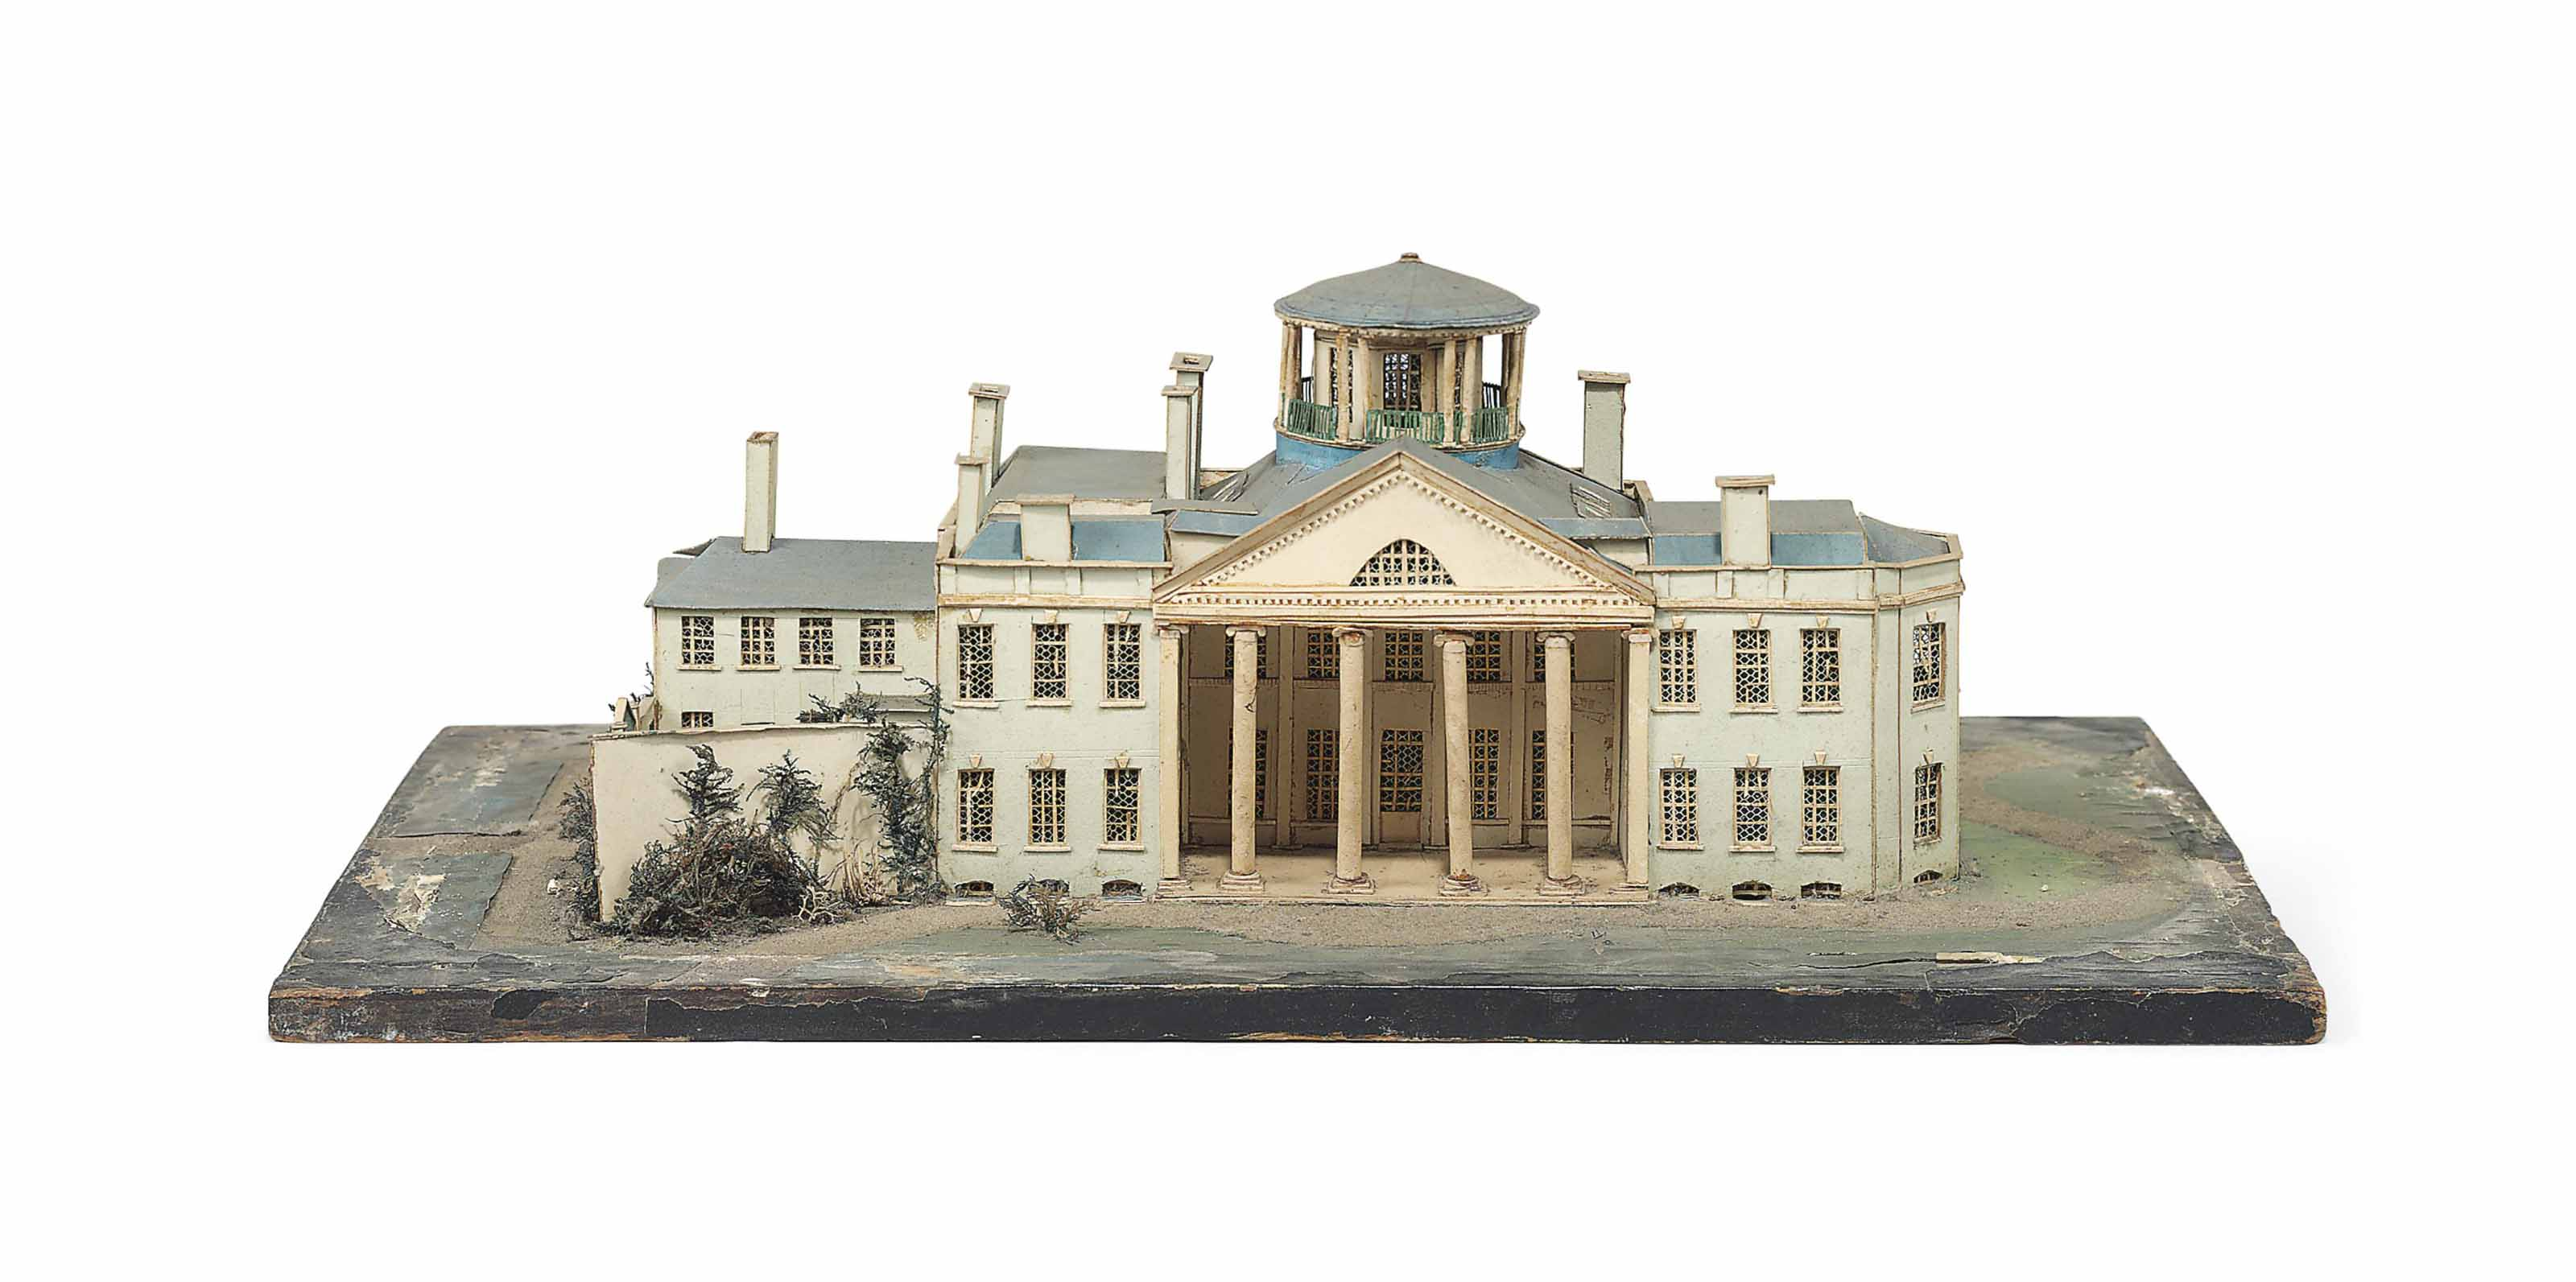 A WILLIAM IV CUT-CARD MODEL OF AN UNIDENTIFIED MANSION